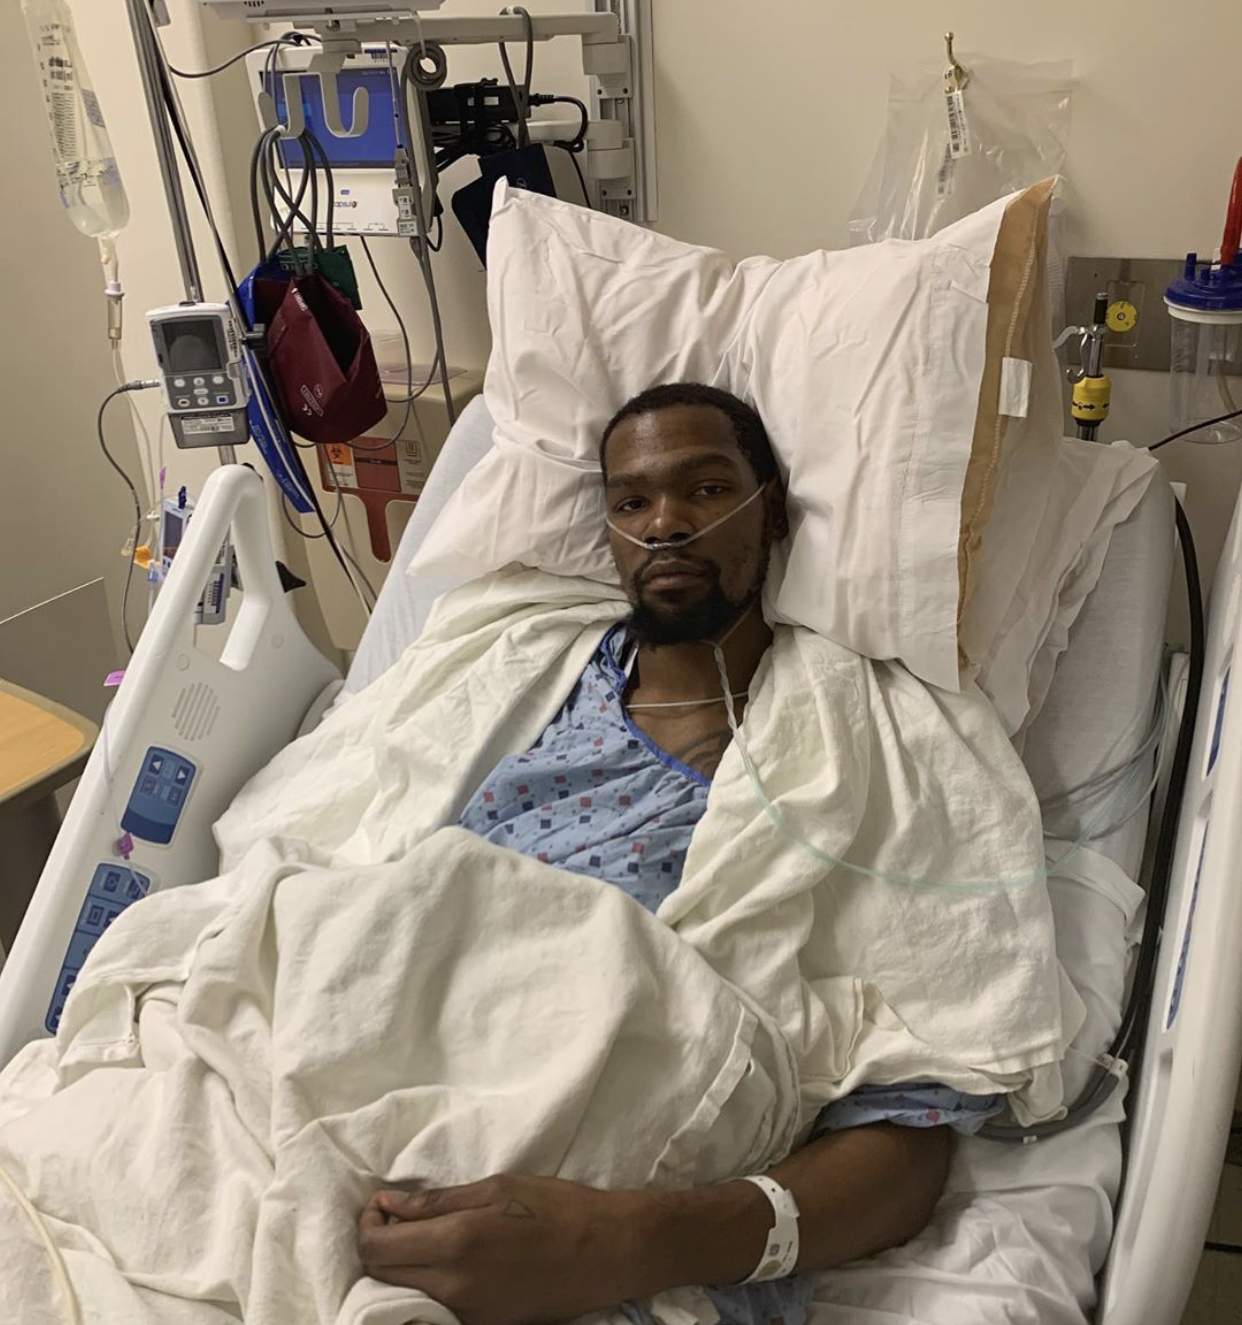 KD after a successful surgery, reassuring fans worldwide that he will be fine.